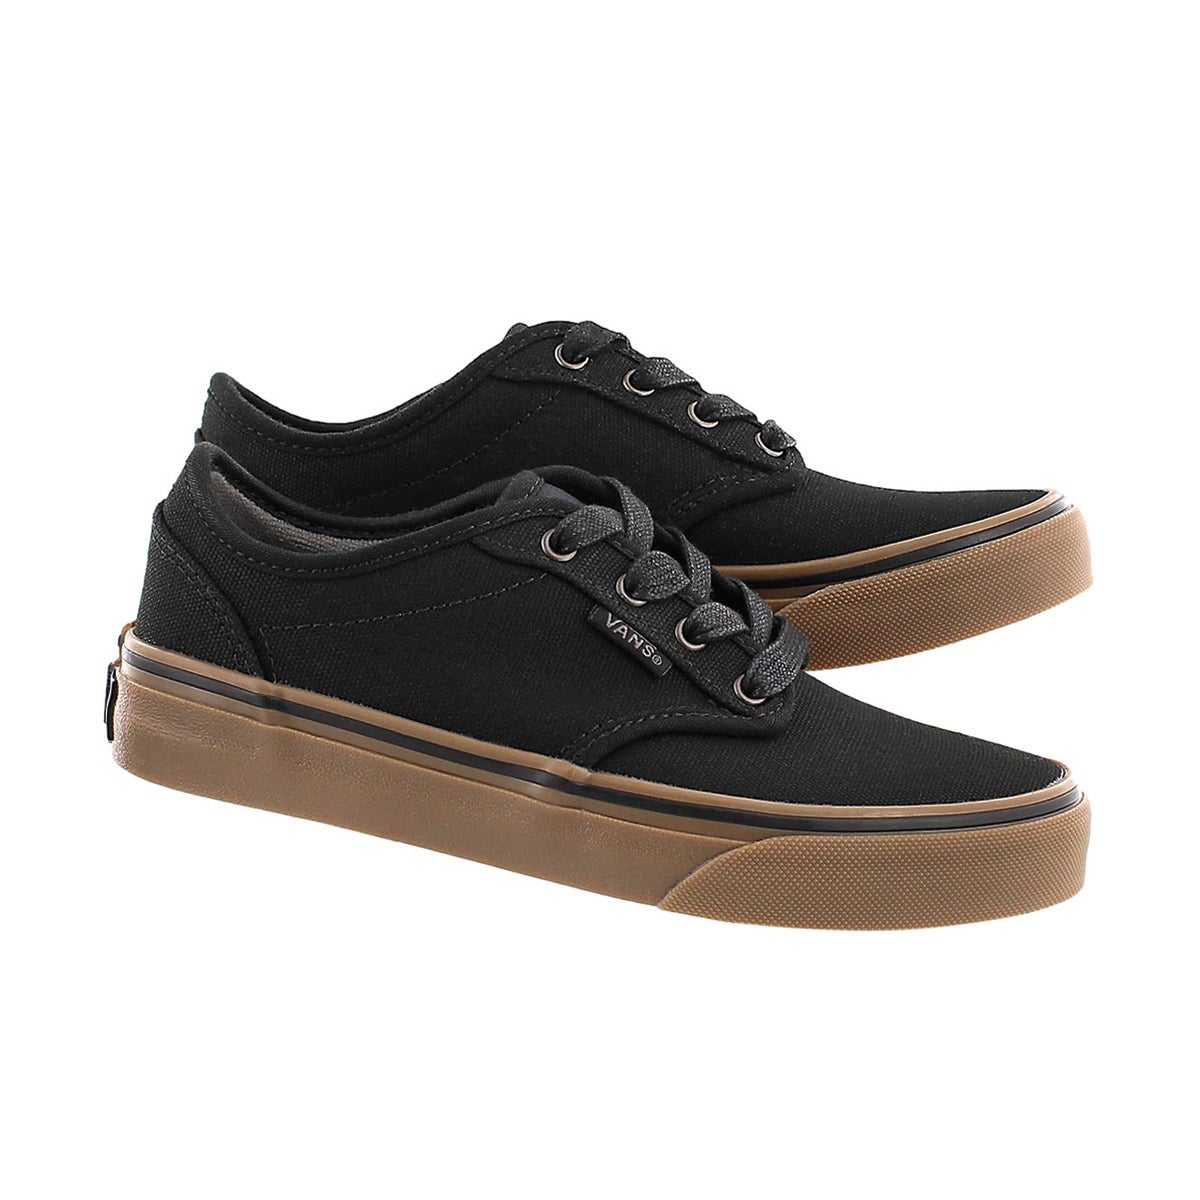 Bys Atwood black canvas lace up sneaker